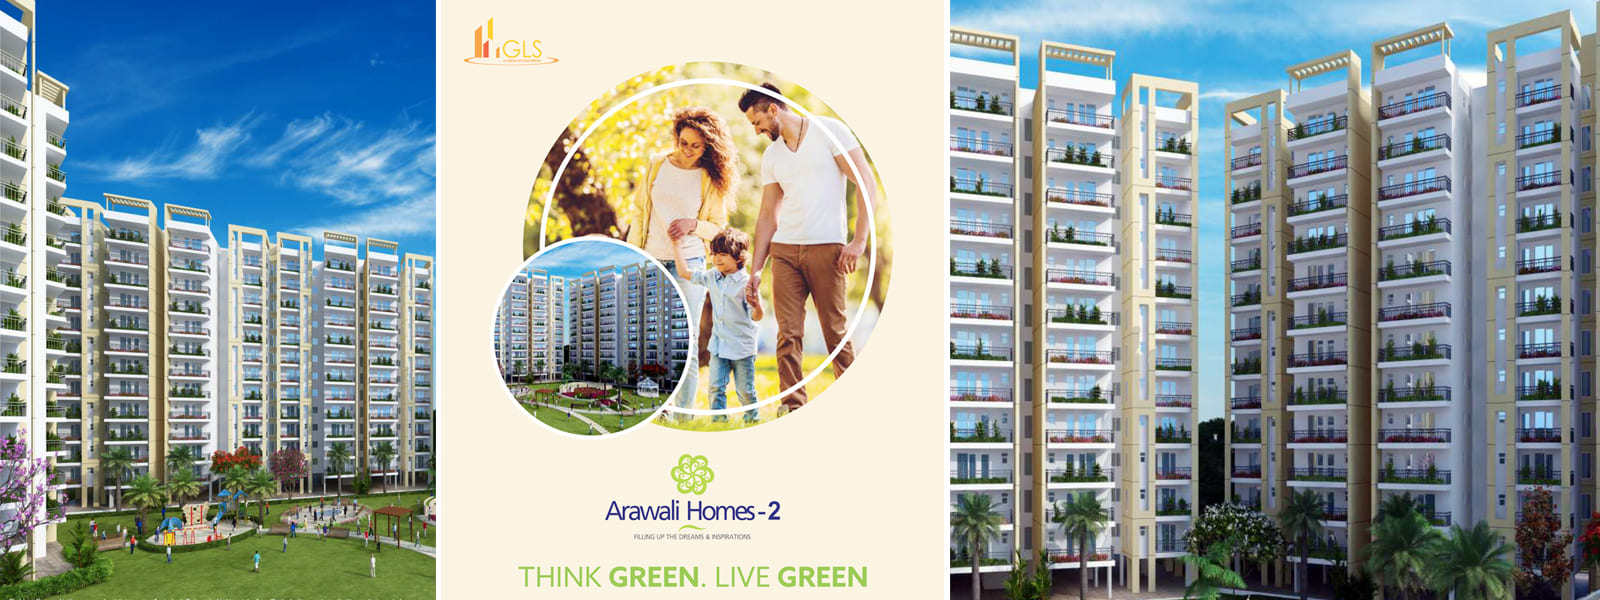 Arawali-Homes-2 - -Orion-Realtors